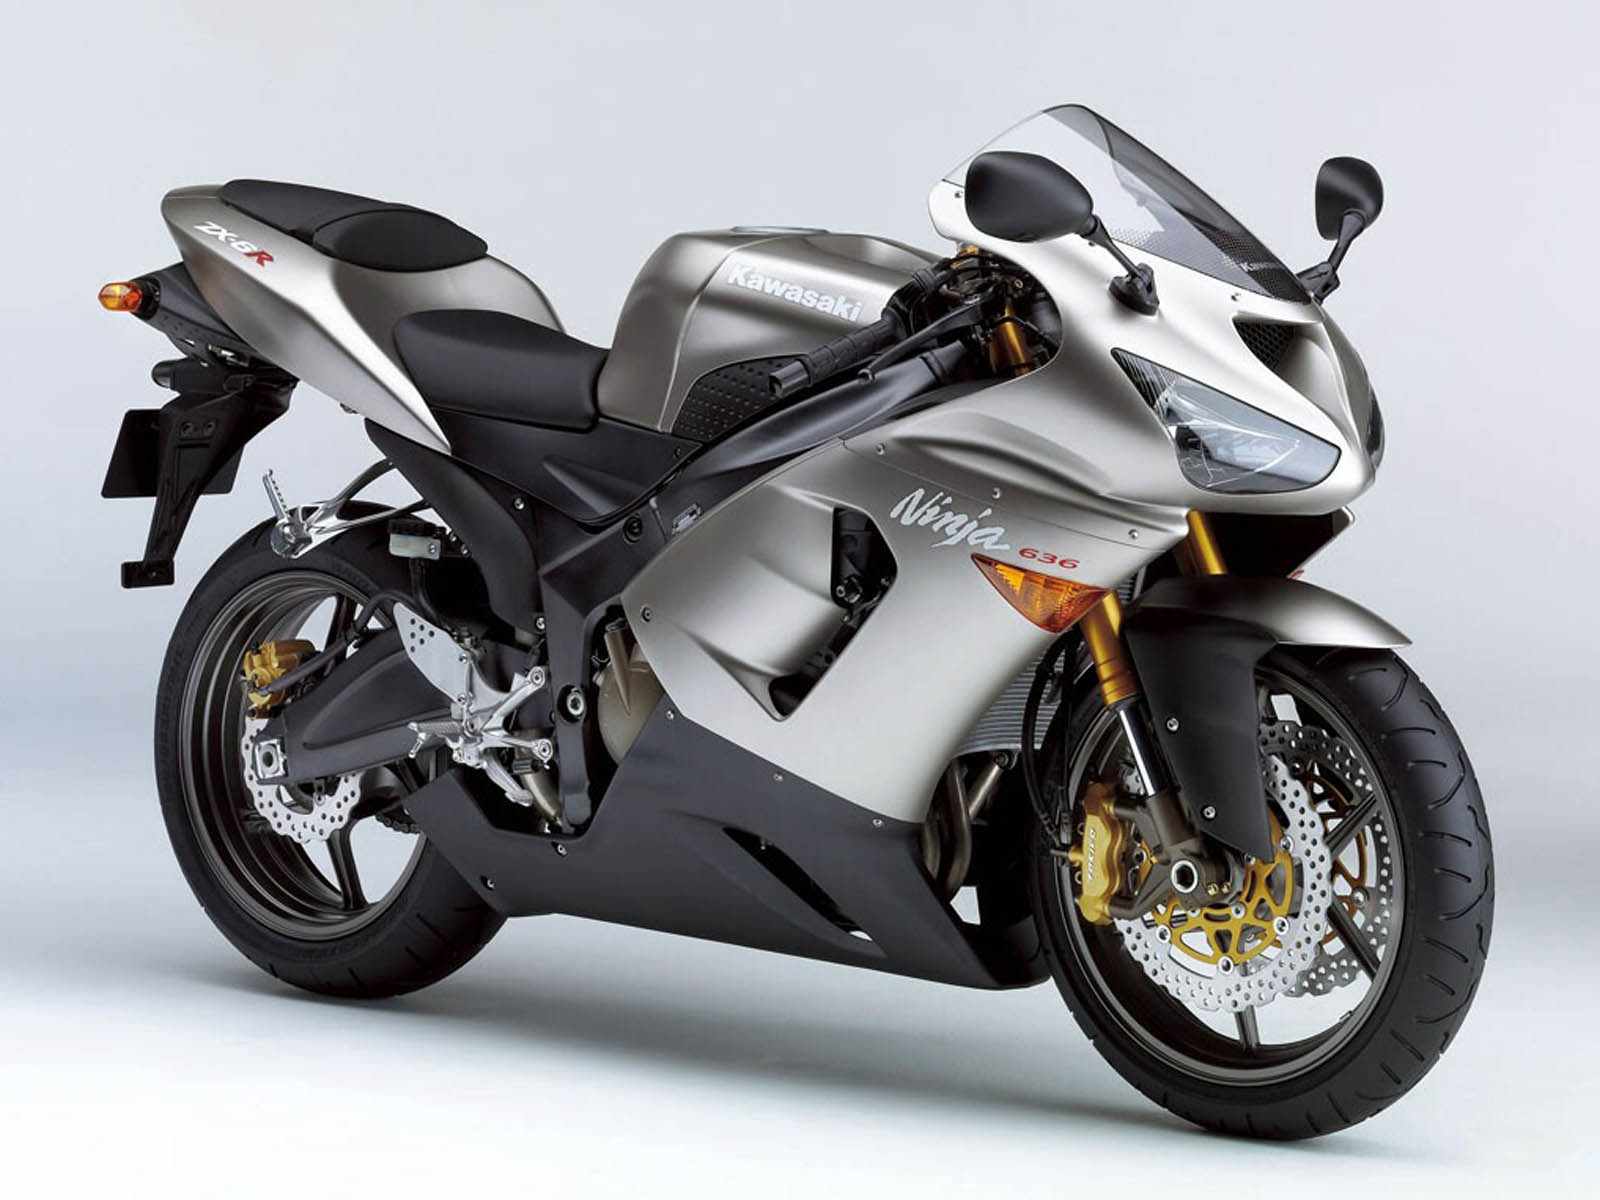 Sport Bikes Wallpapers For Android: Wallpaper: Sports Motorcycles Wallpapers